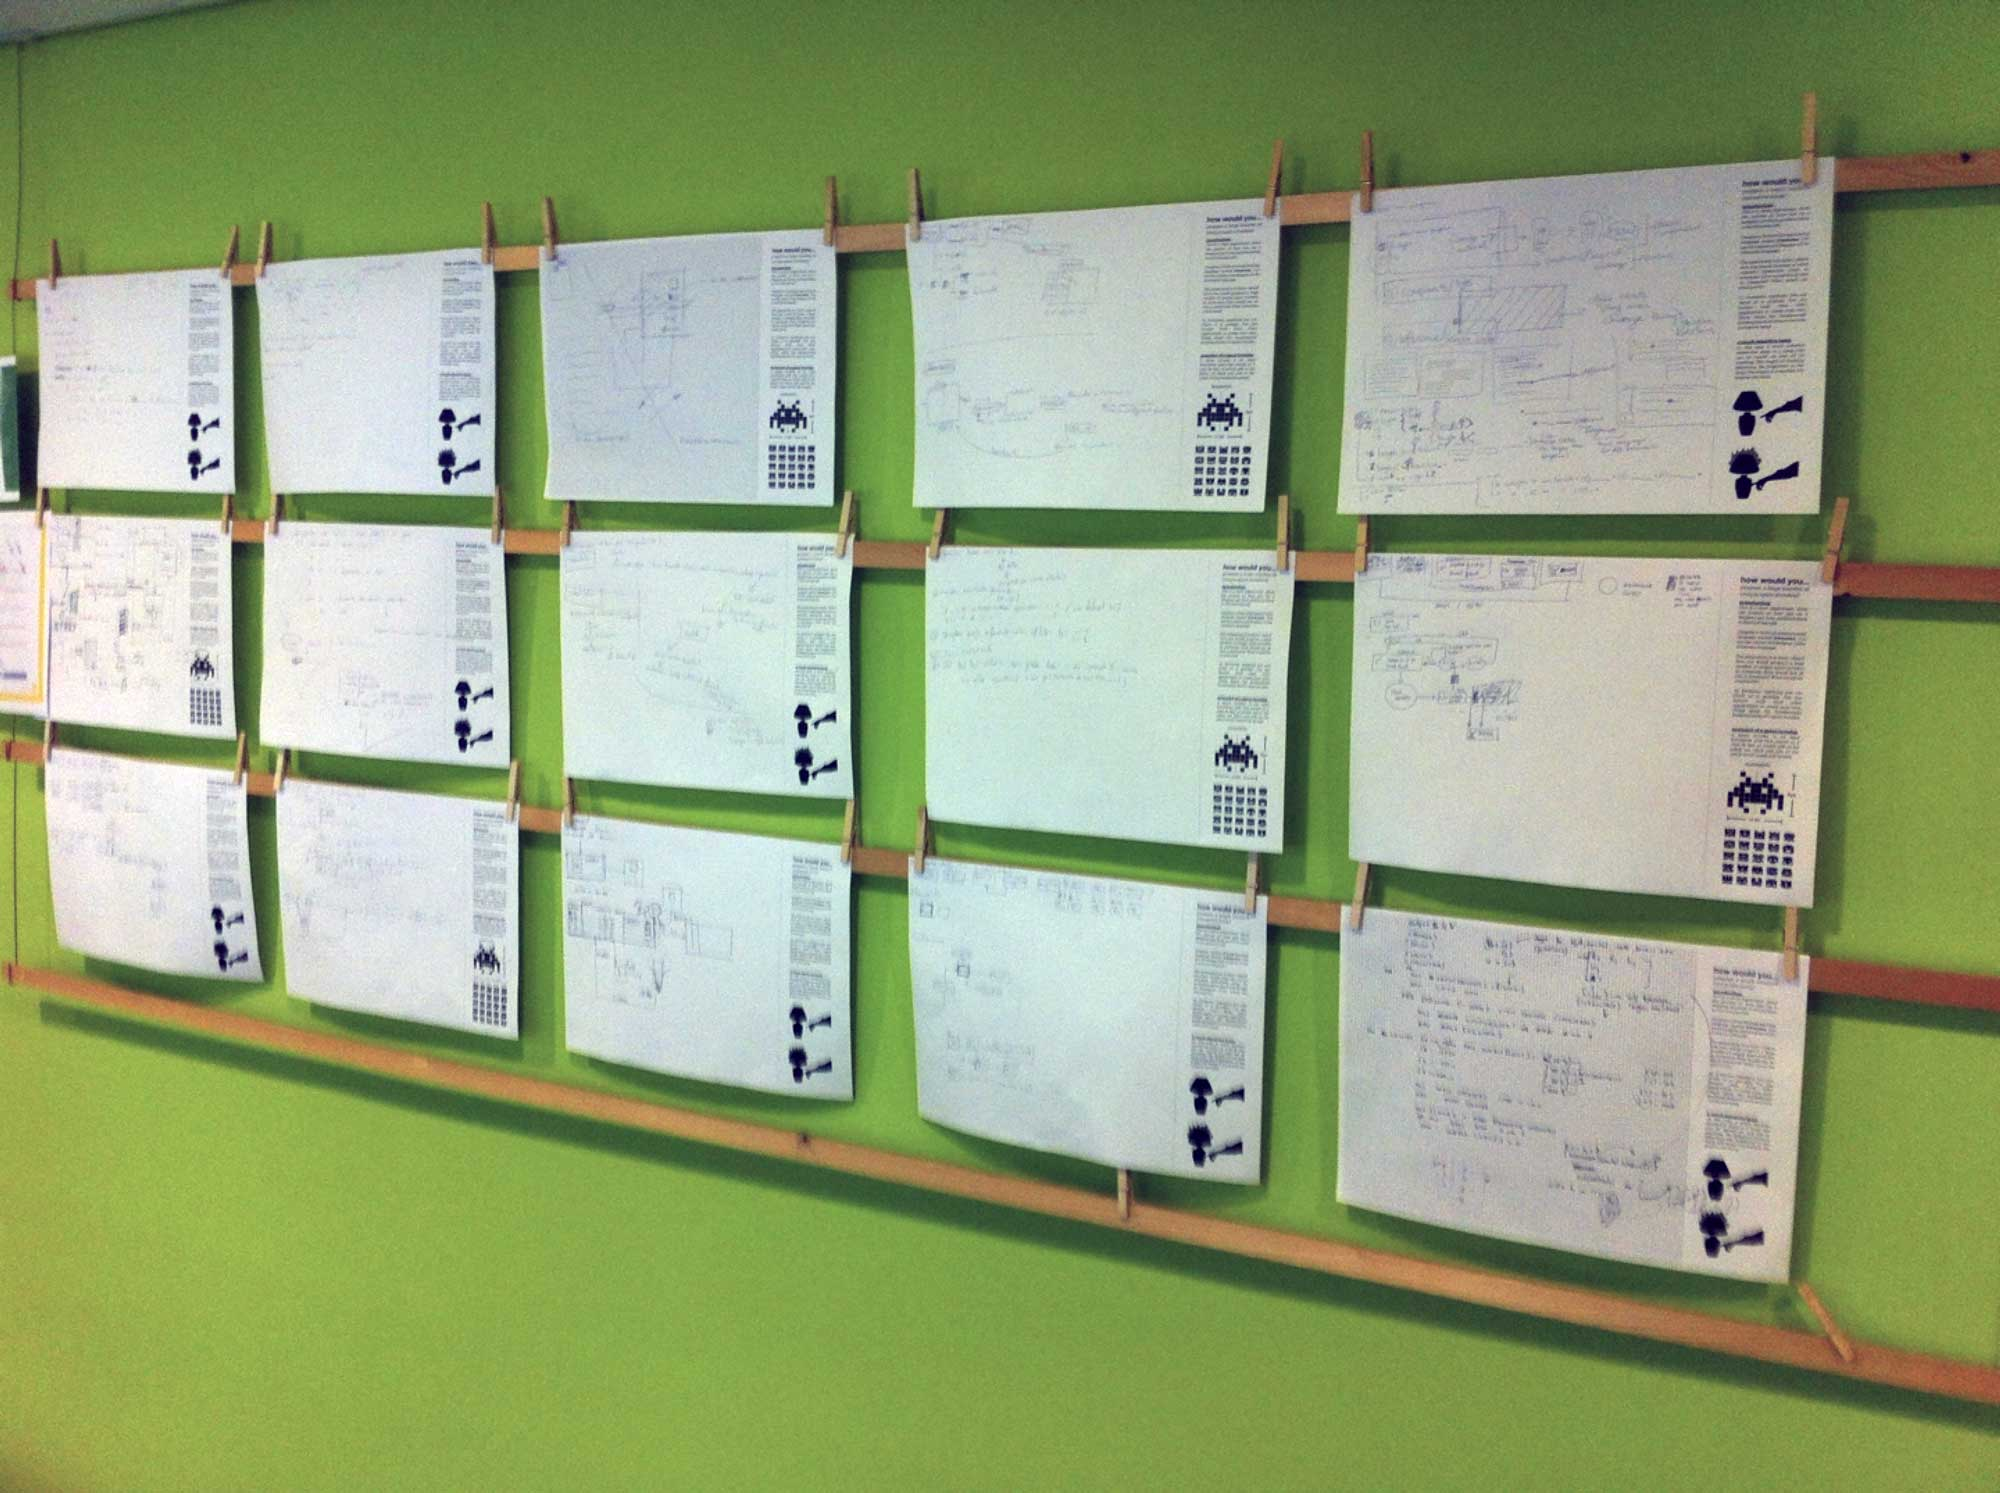 Research results of paper programming, hanged on a wall